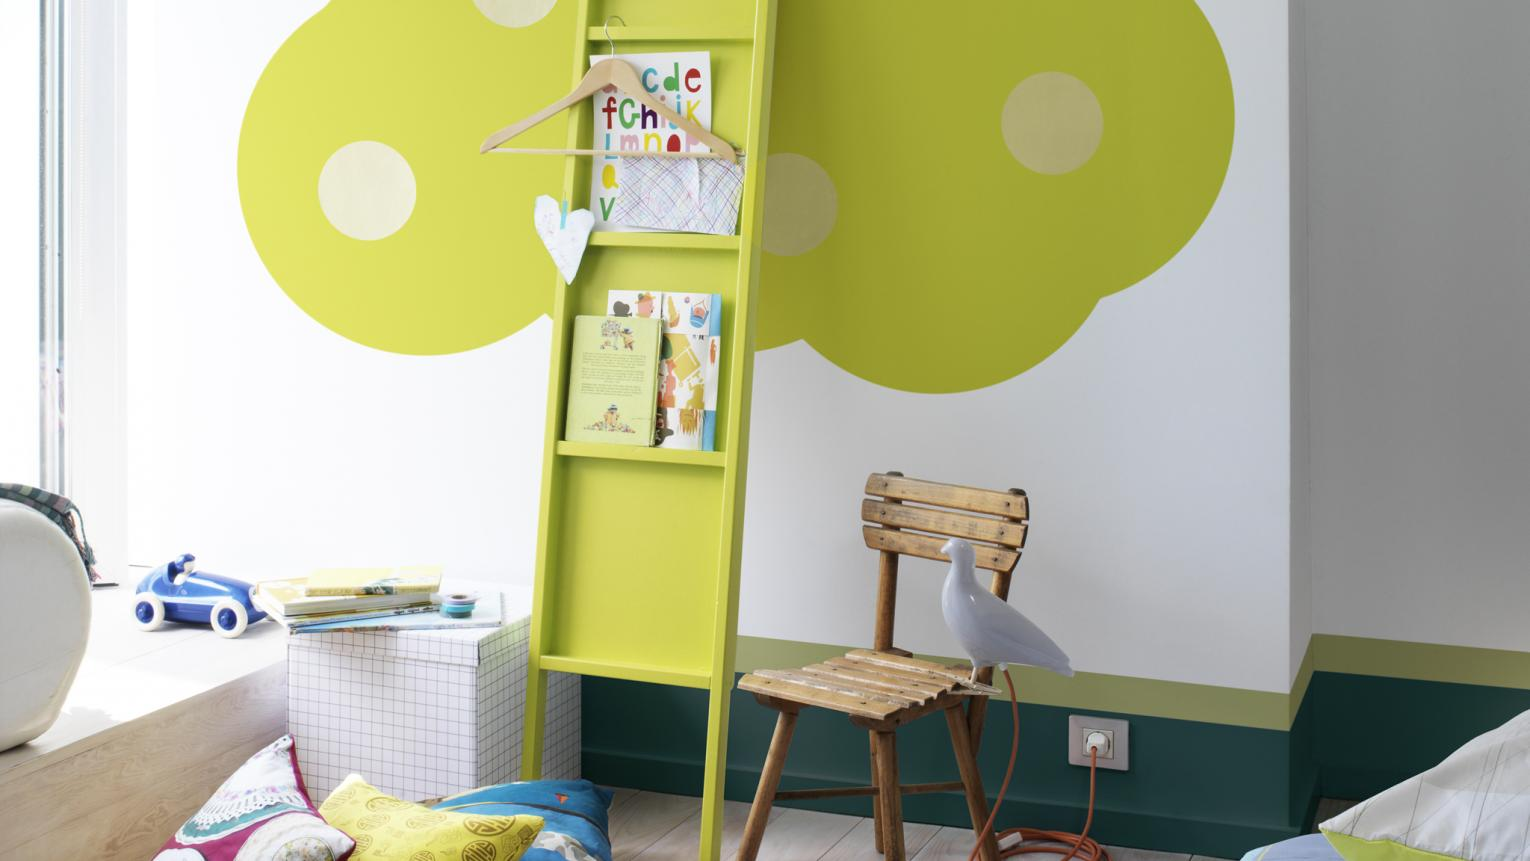 Be playful with your use of colour and shapes in a kids' room.